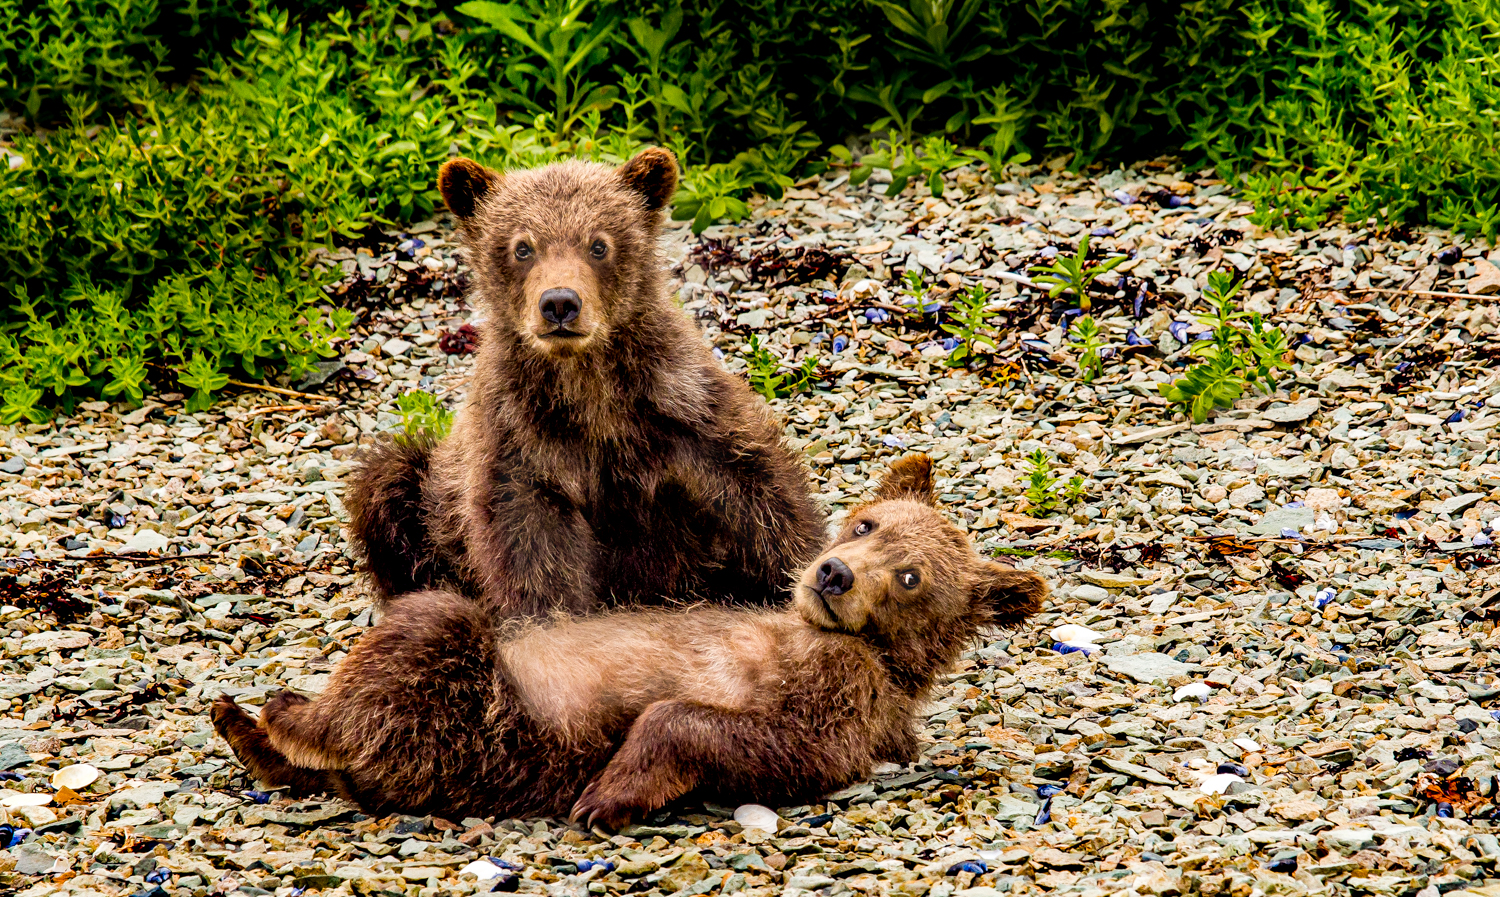 Brown bear sibling cubs.